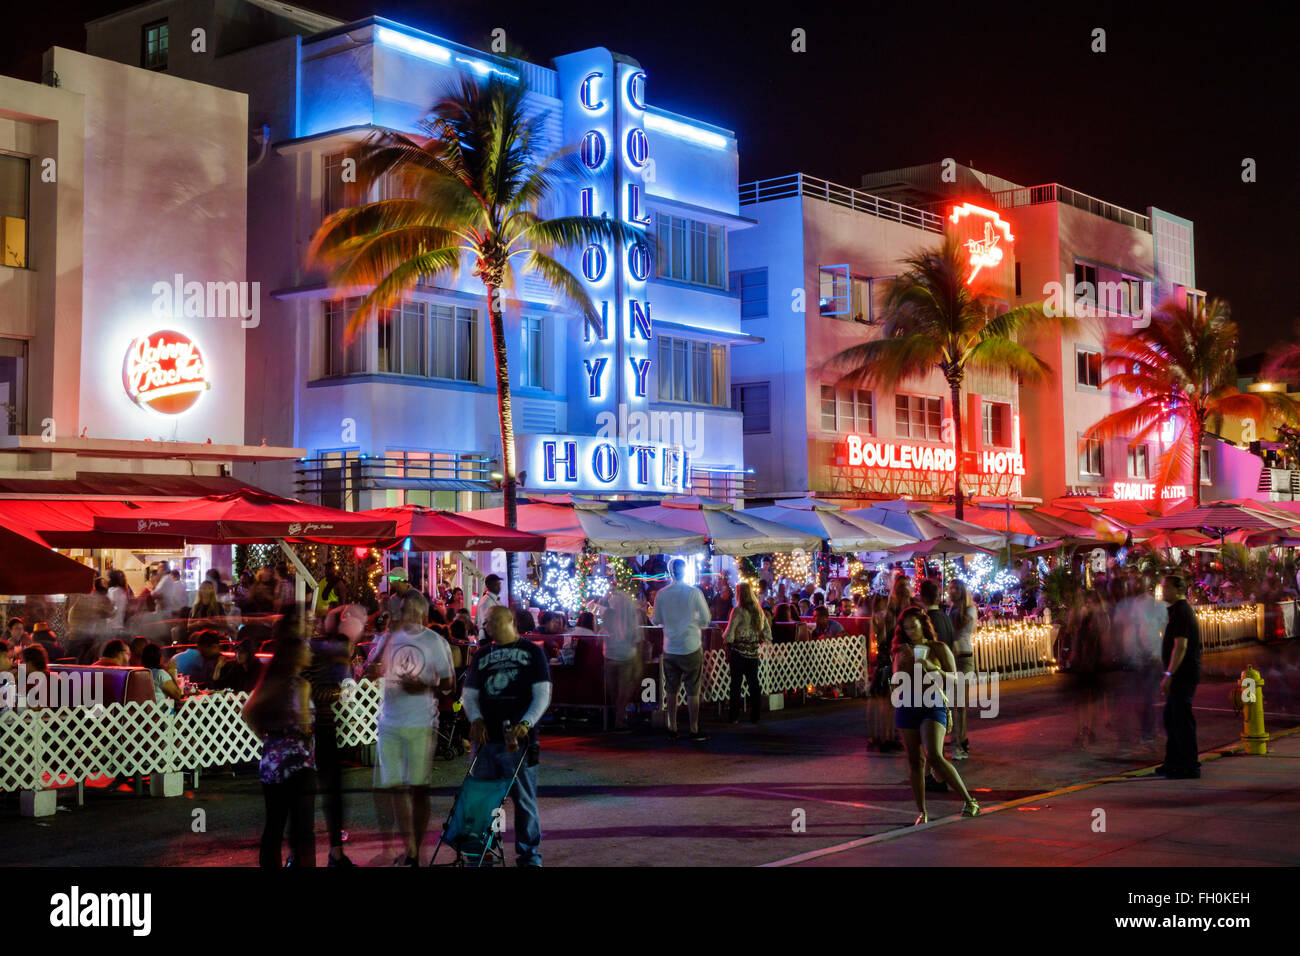 Miami Beach Florida Ocean Drive New Years Eve Art Deco District Style Night Nightlife Neon Signs Colony Boulevard Hotels Hotel